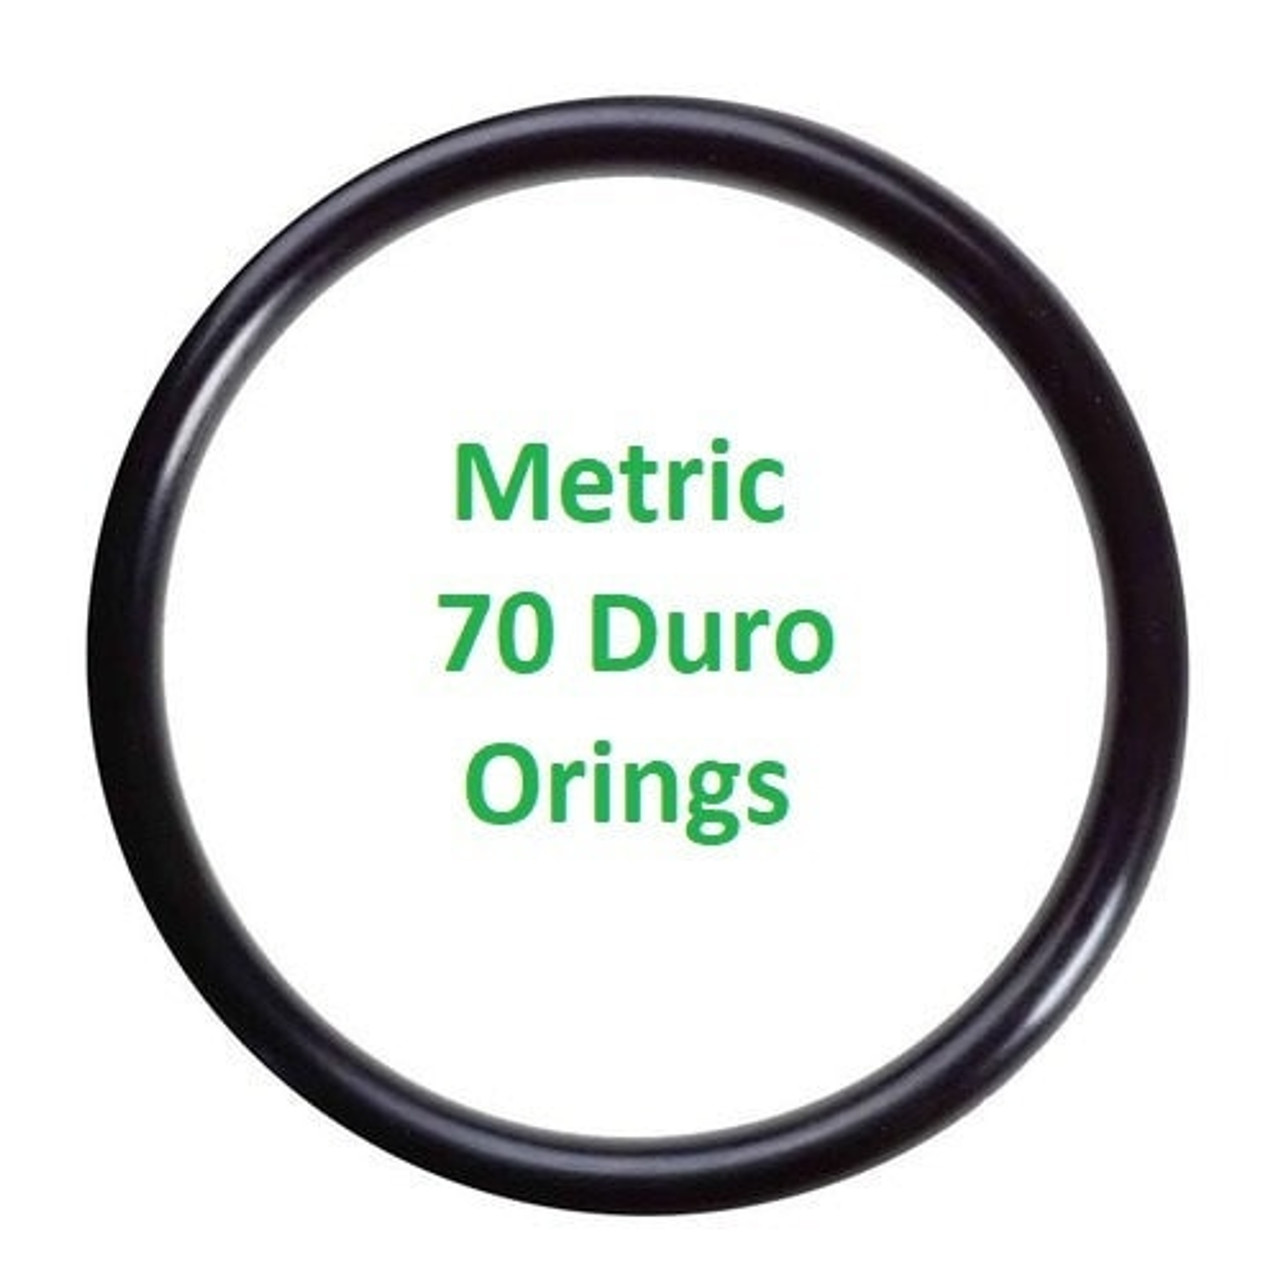 Metric Buna  O-rings 8 x 1mm Price for 50 pcs